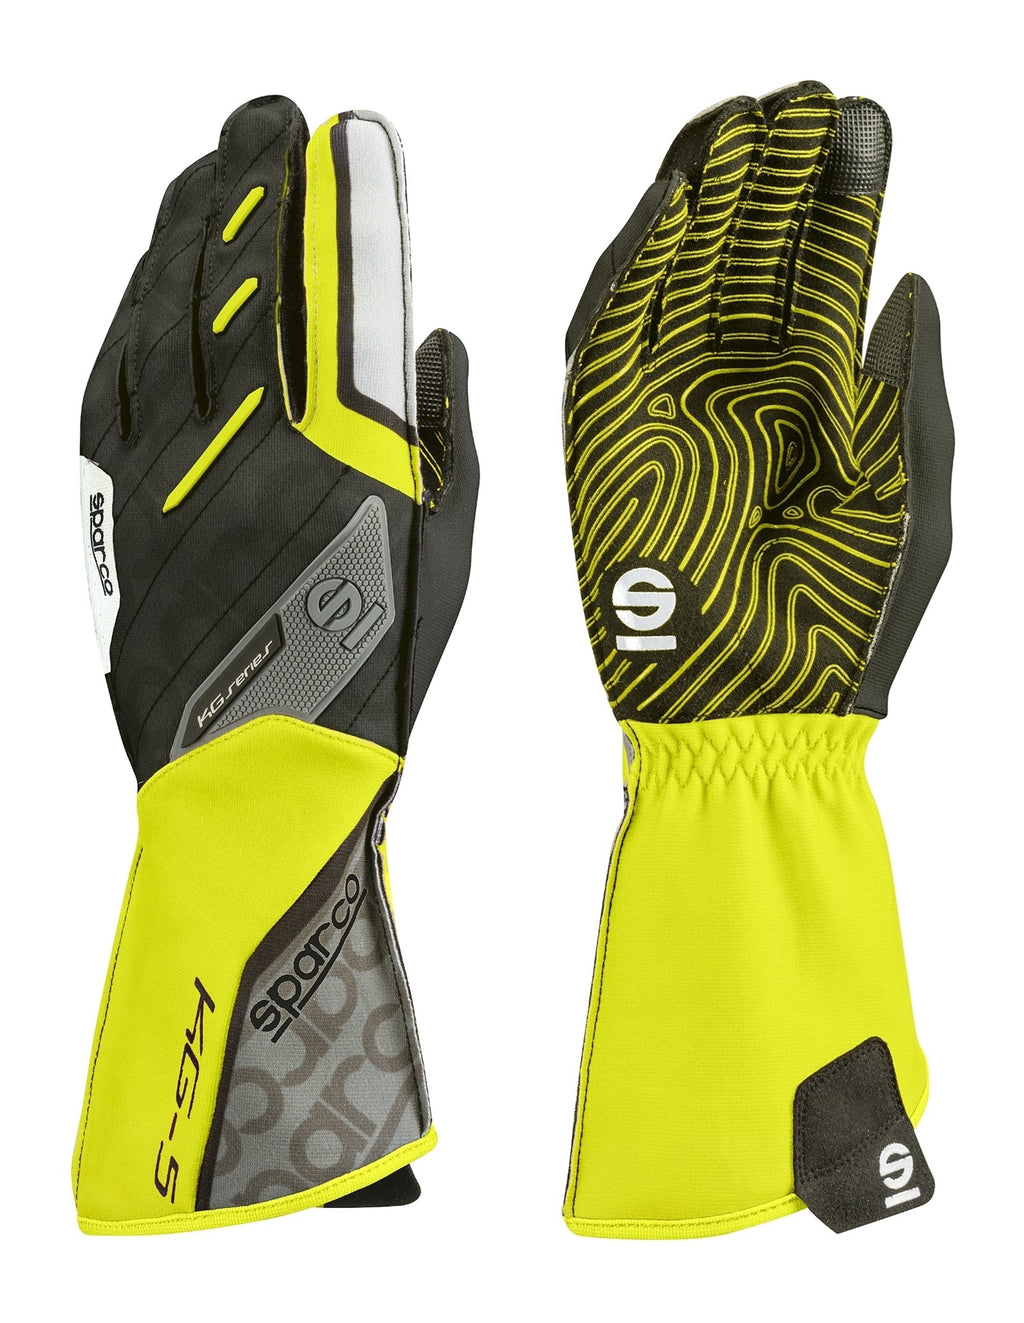 Sparco Motion KG-5 Karting Gloves